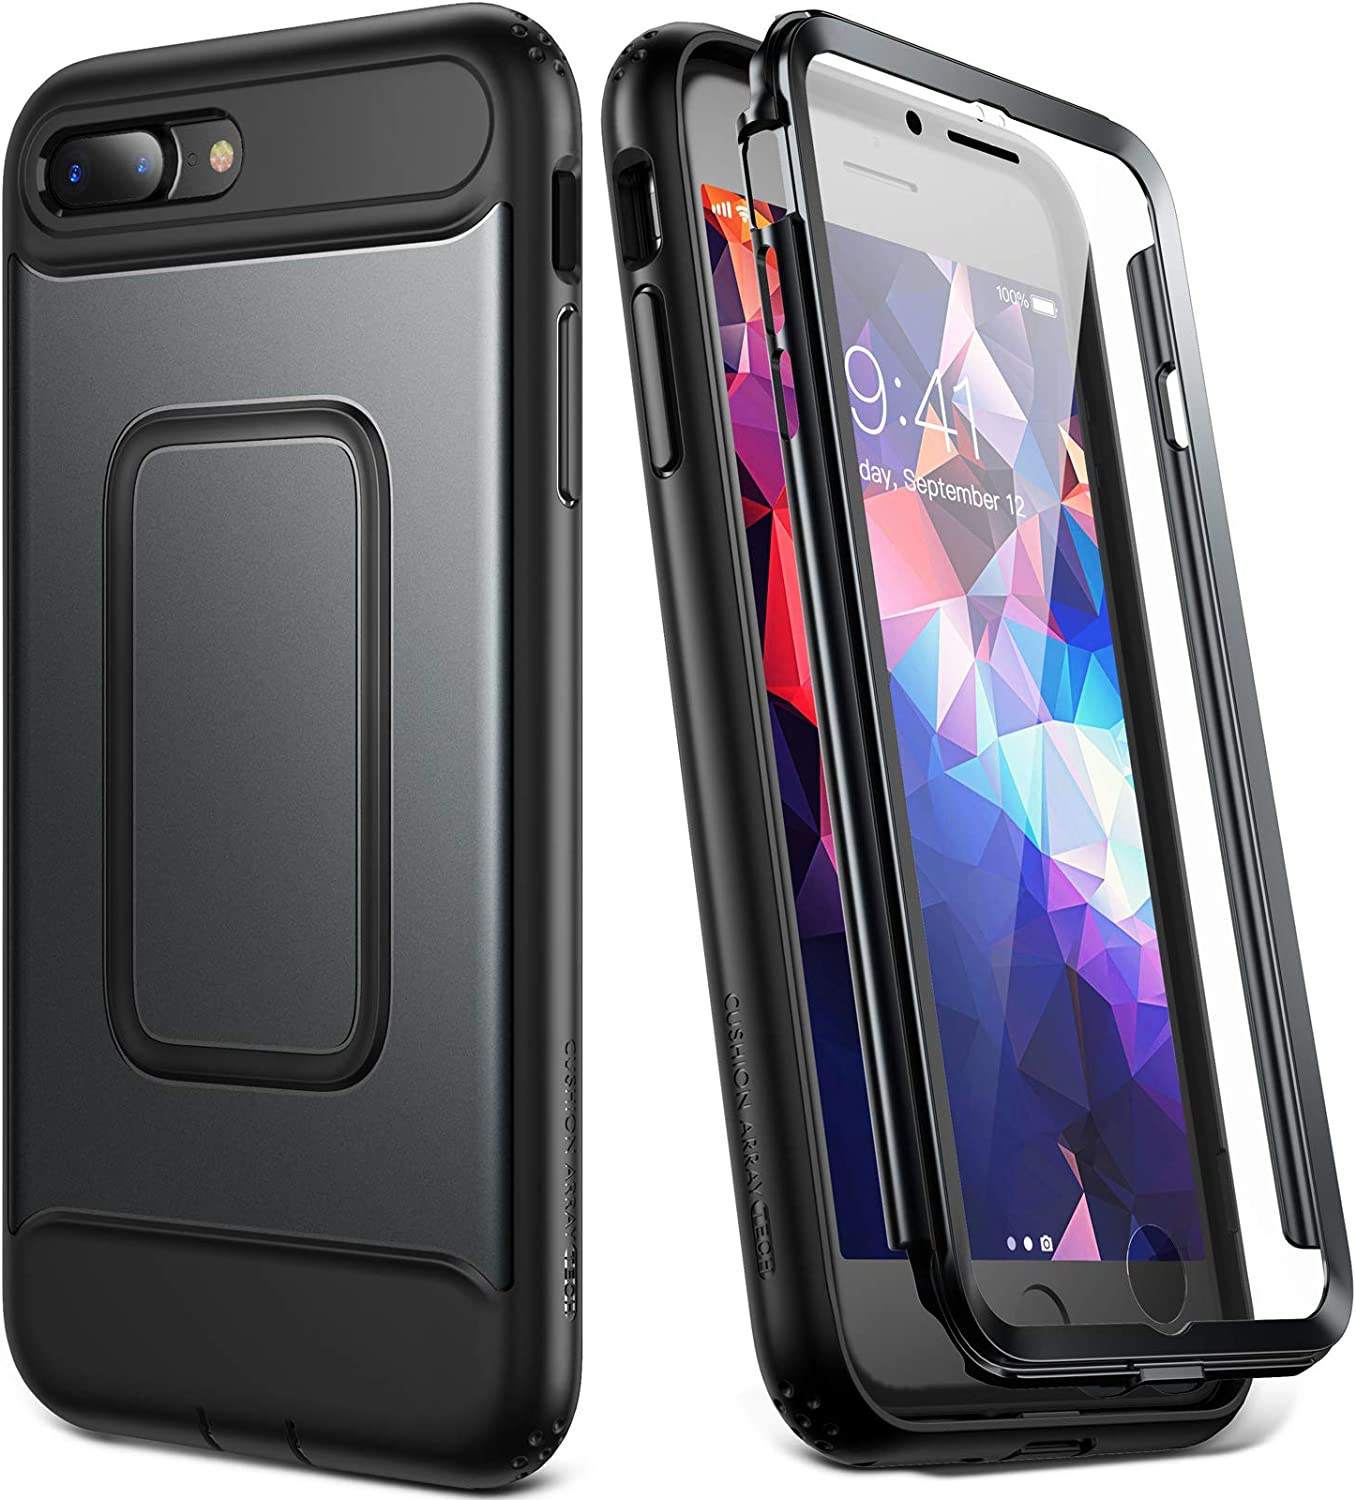 YOUMAKER iPhone 8 Plus Case & iPhone 7 Plus Case, Full Body Rugged with Built-in Screen Protector Heavy Duty Protection Slim Fit Shockproof Cover for iPhone 8 Plus/iPhone 7 Plus (5.5 Inch) - Black